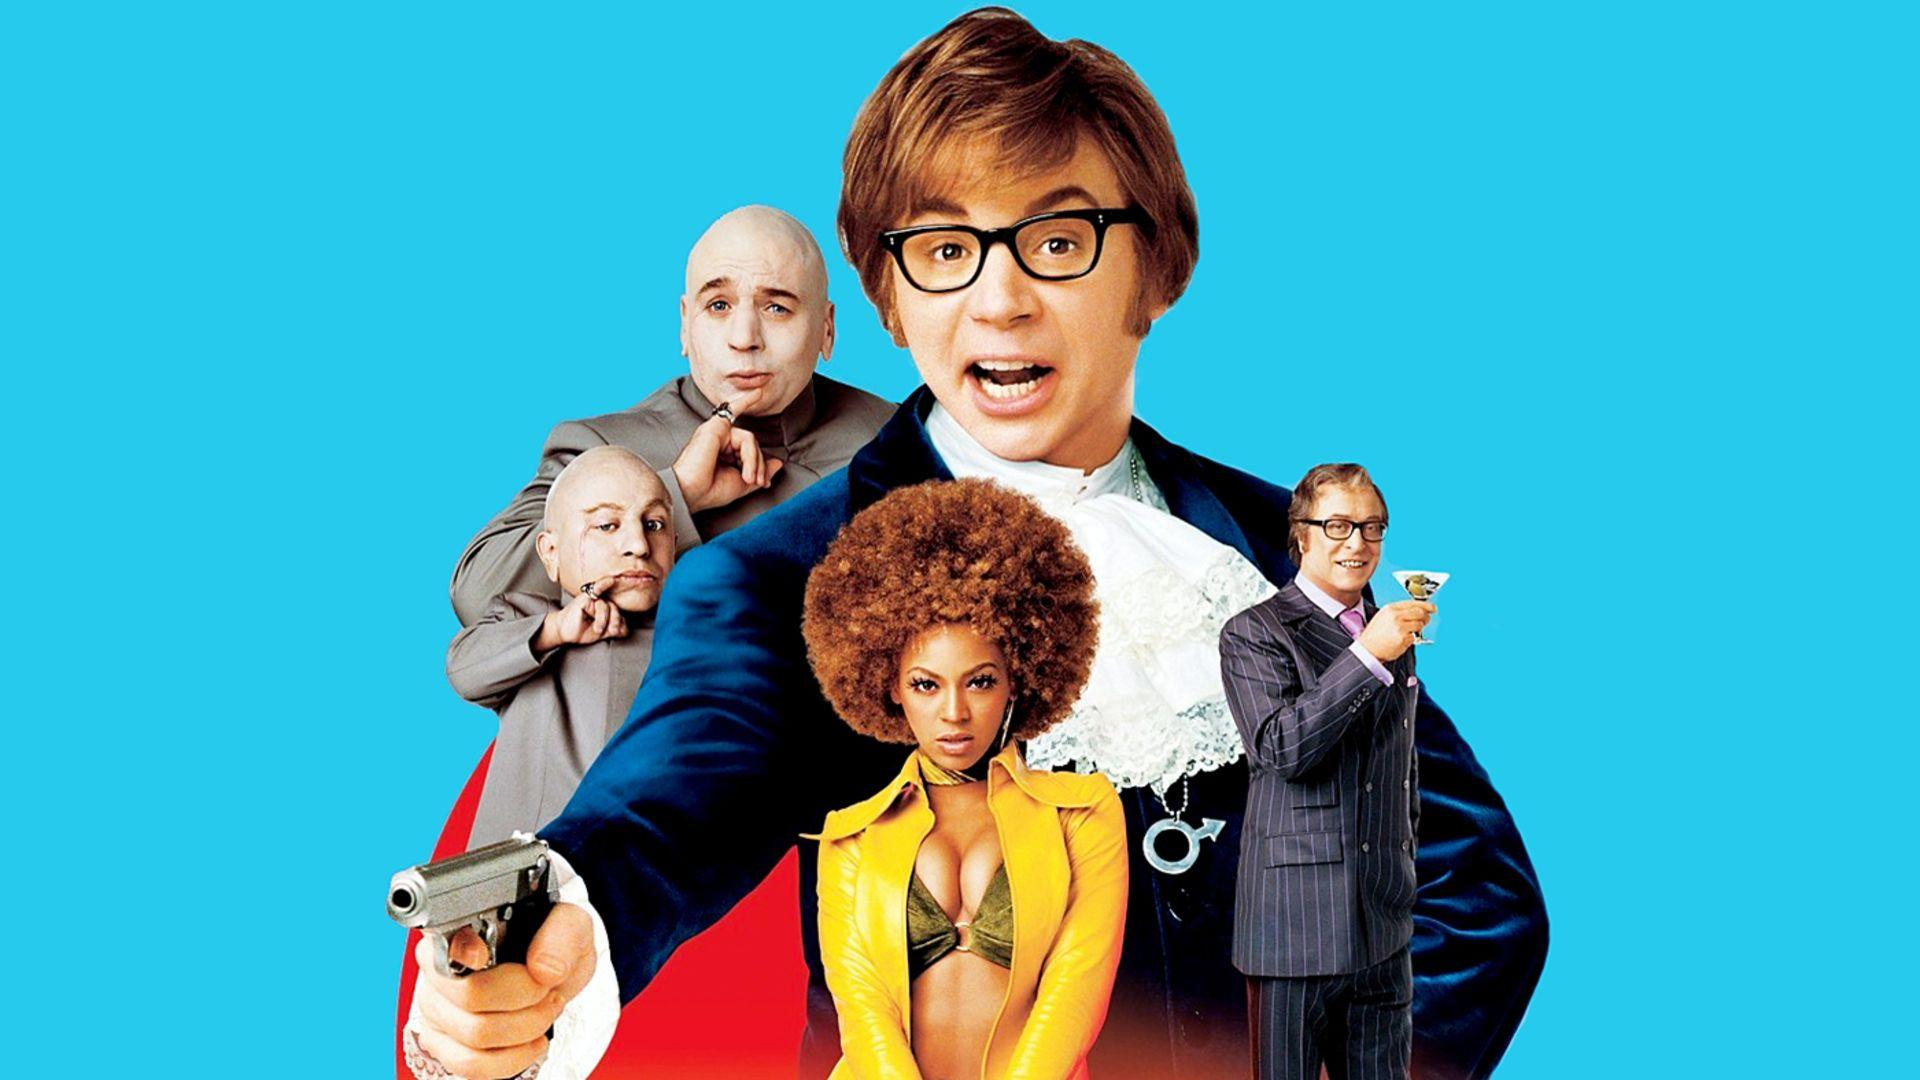 Austin Powers in Goldmember Full HD Bakgrund and Bakgrund